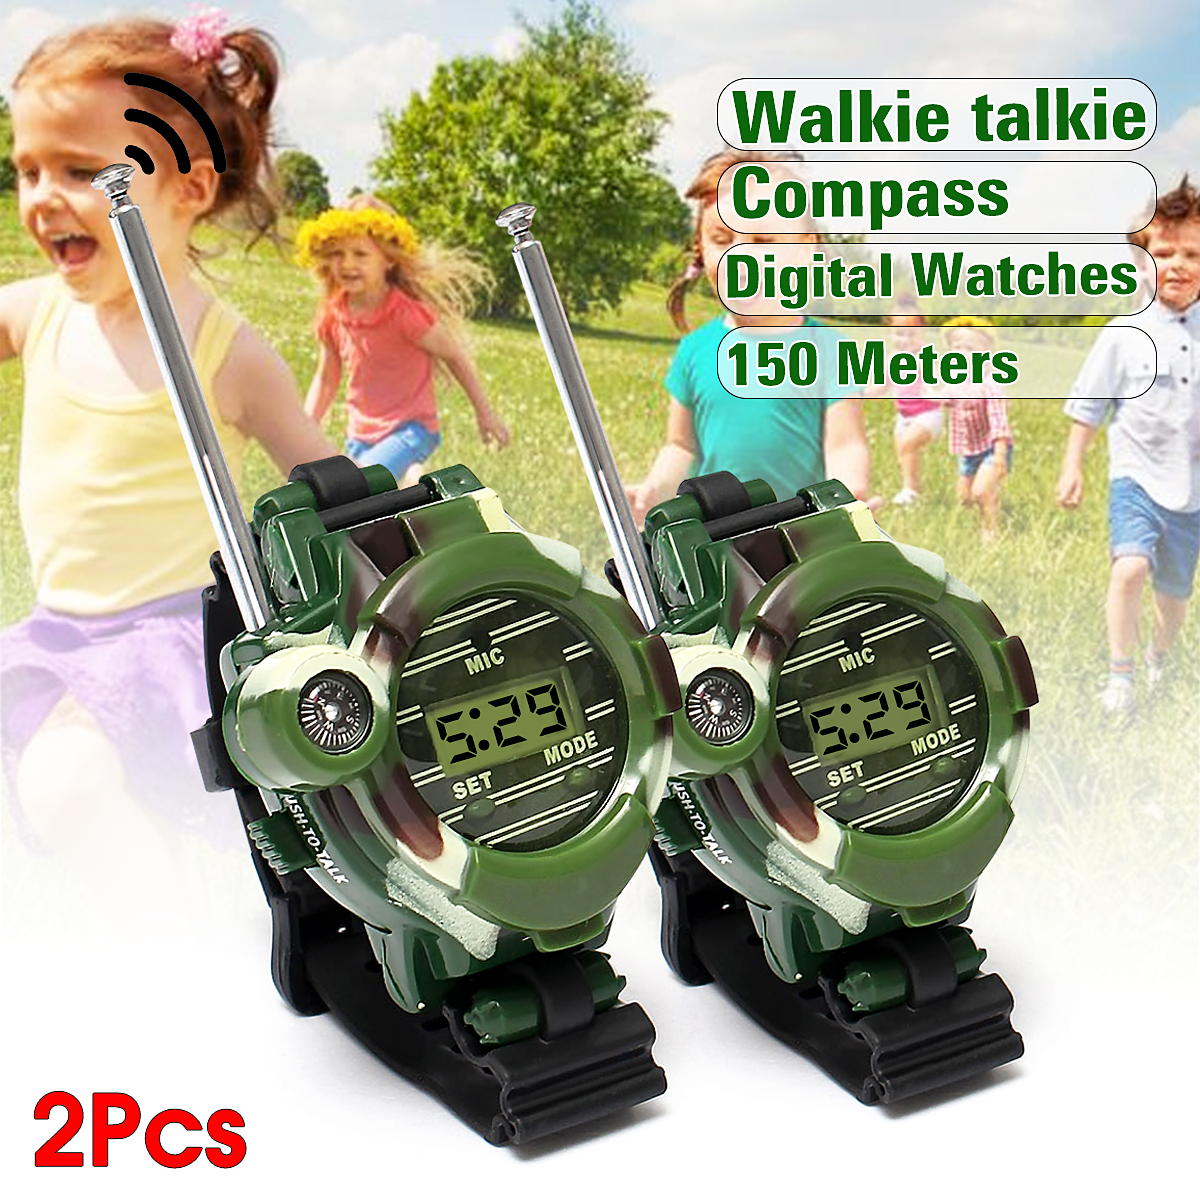 2pcs 7 In 1 Multi-function Toy Walkie Talkies Camouflage 150 Metres digital Wrist Watch Girl Boy Kids Children Toys Christmas gift